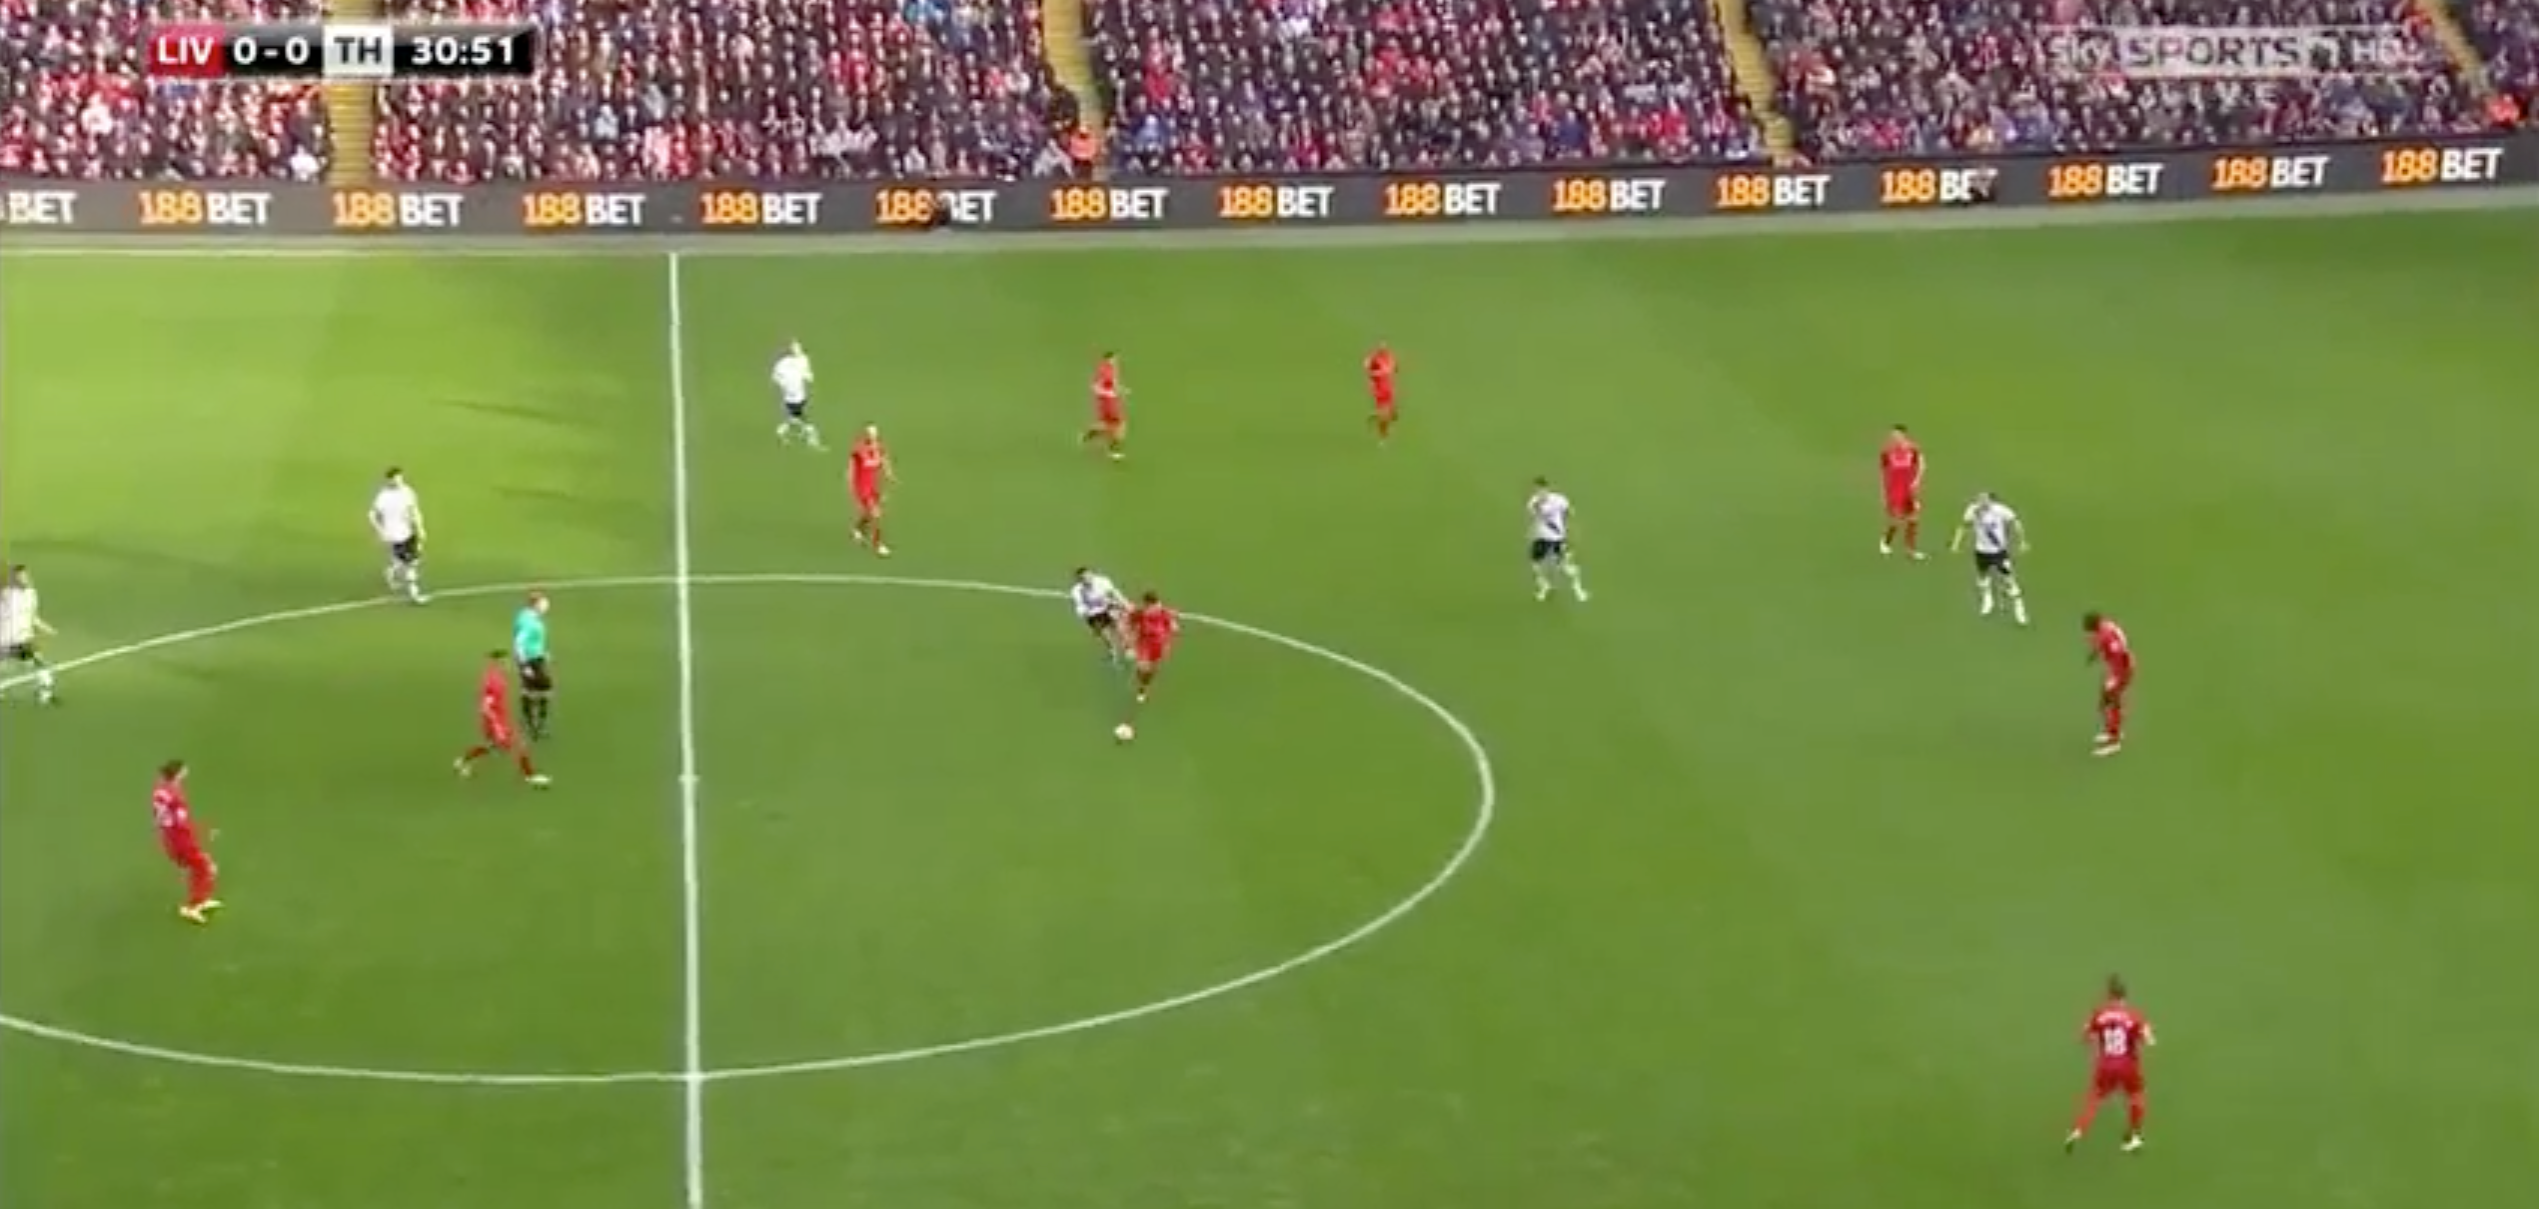 However, his first touch takes him into a bad area and his second is even worse, presenting the ball straight to Emre Can. Had his first touch been better, Son's run off the ball may have opened up space for him, but it was poor and so Can decided to press him, knowing that he would not be able to play the ball to Son.